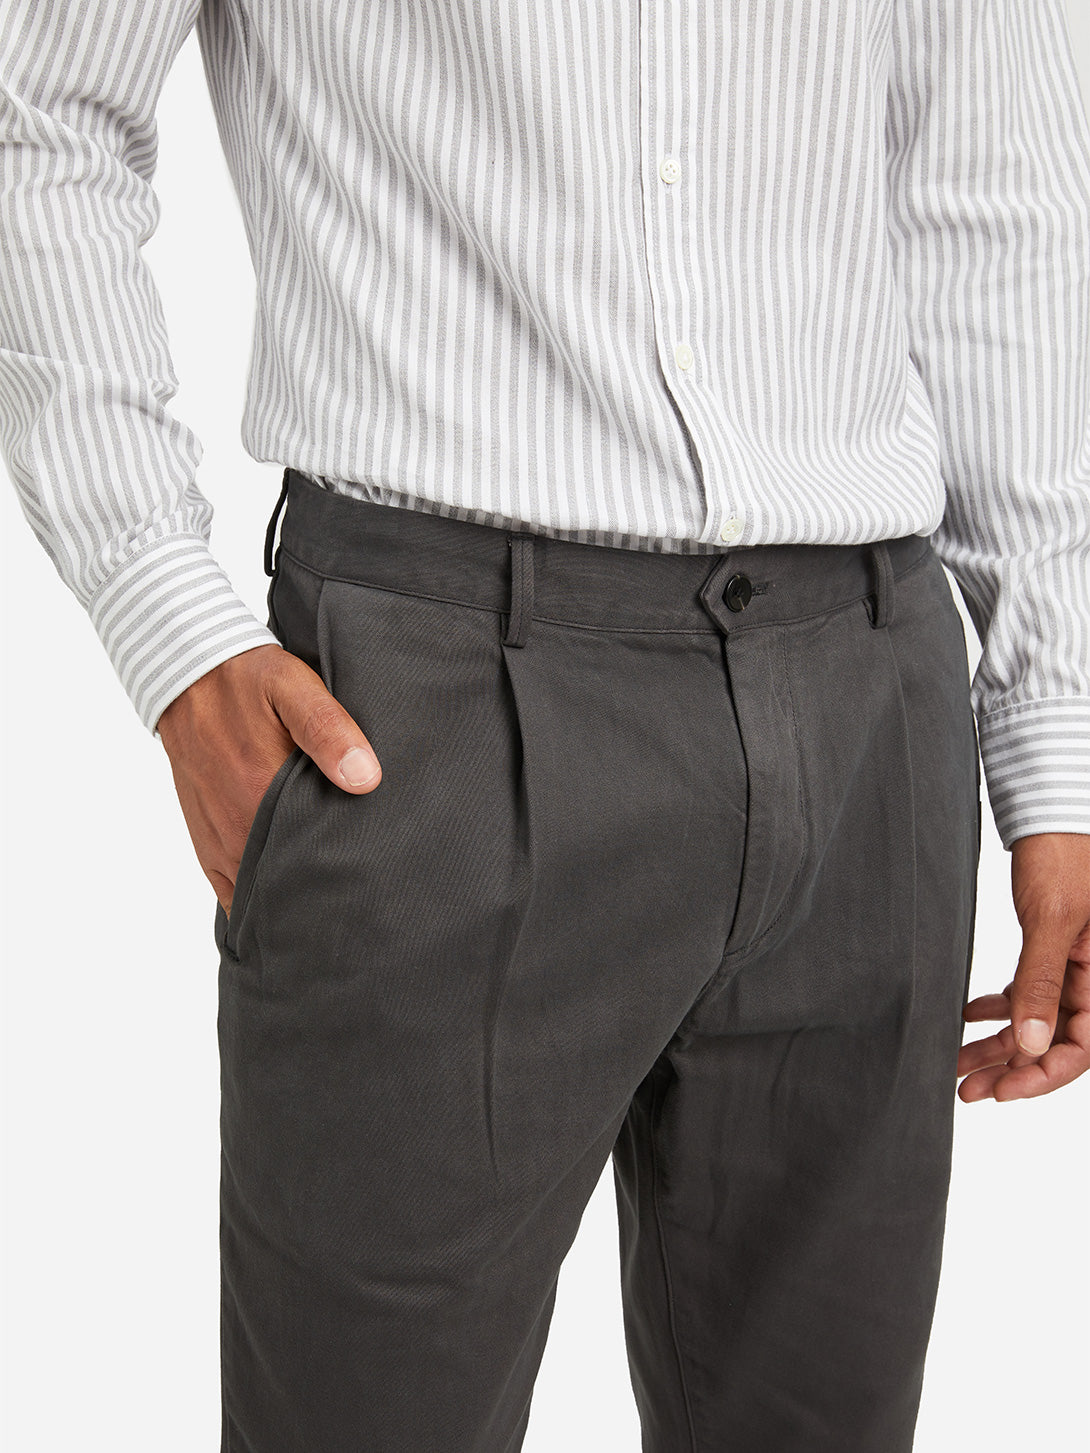 CHARCOAL GREY mens chino pants modern chino grey ons clothing